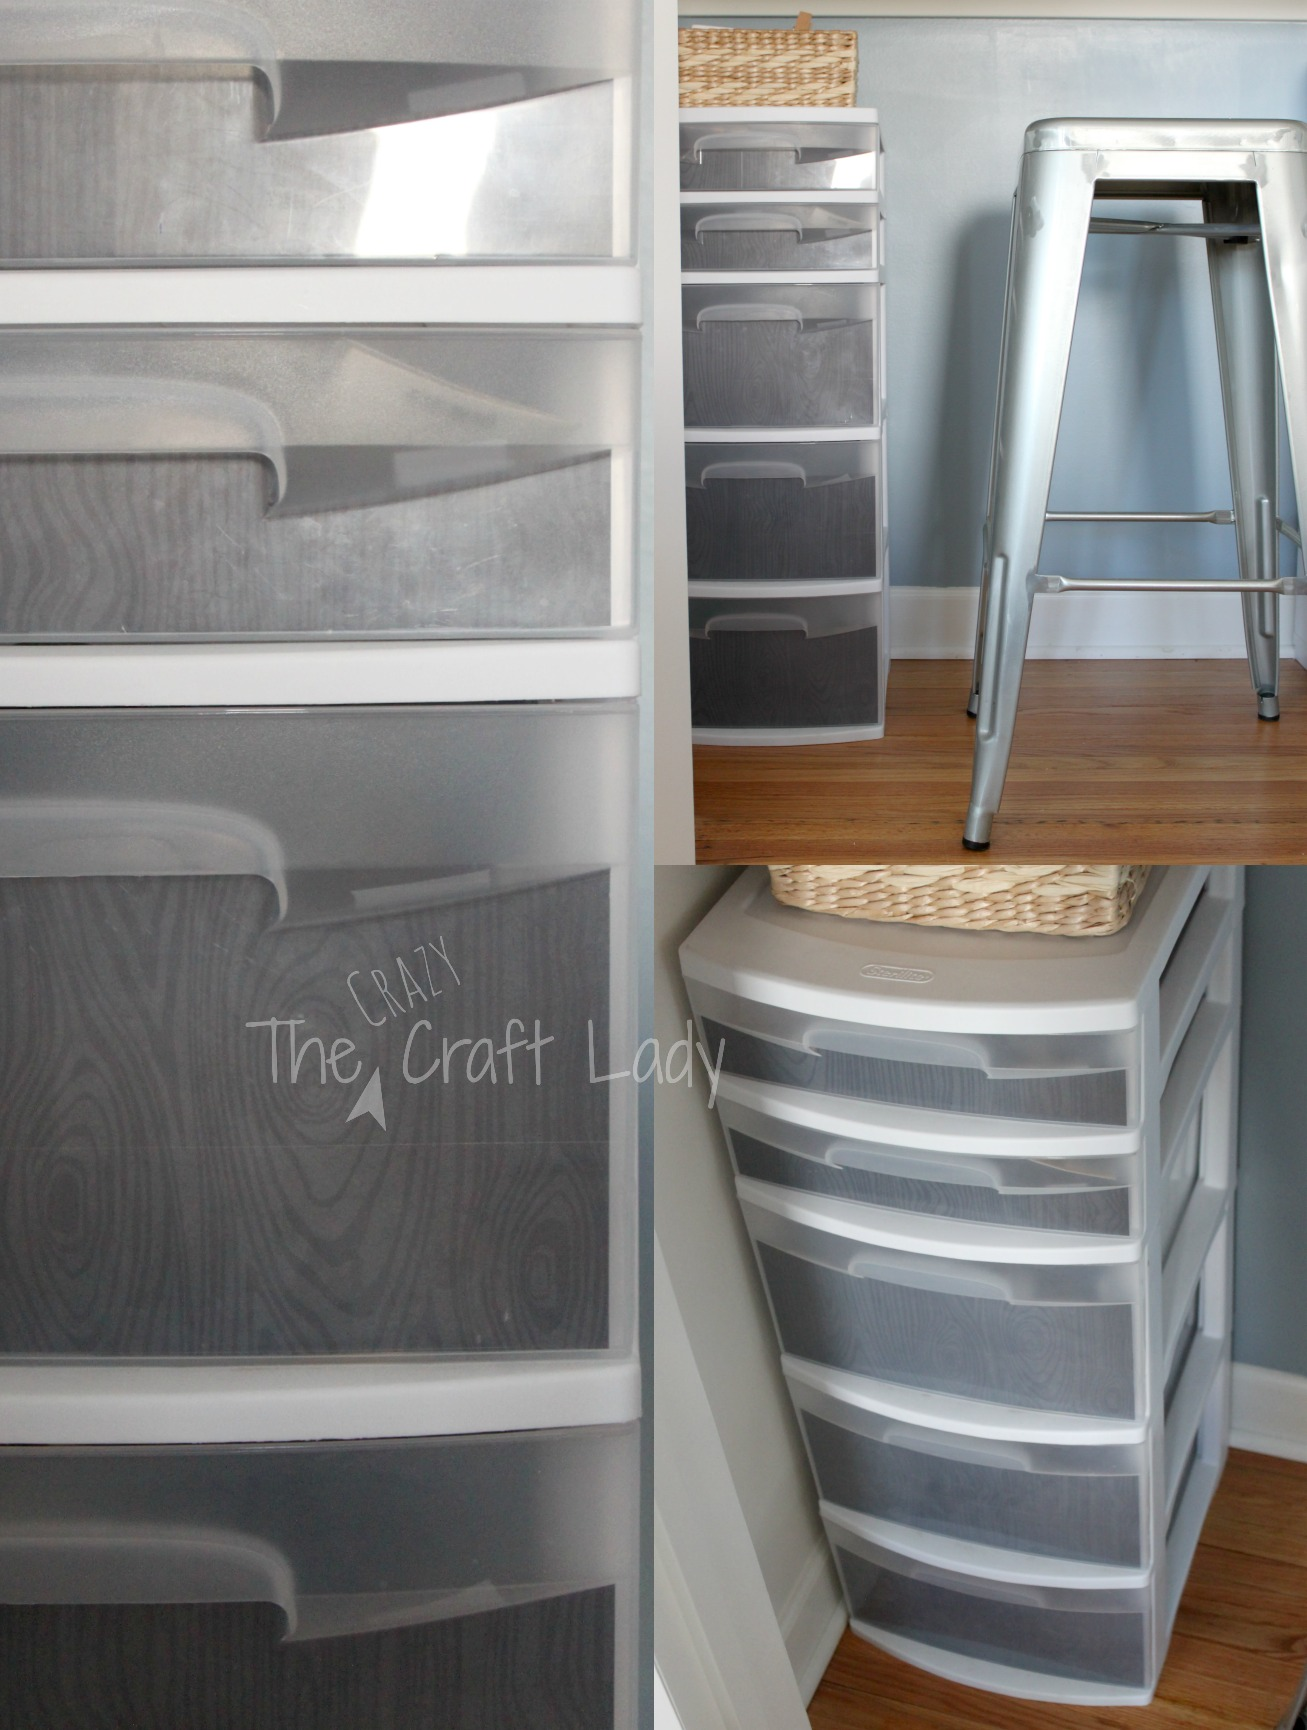 Tape Sbook Paper To The Inside Of Clear Plastic Storage Drawers For A Custom Look